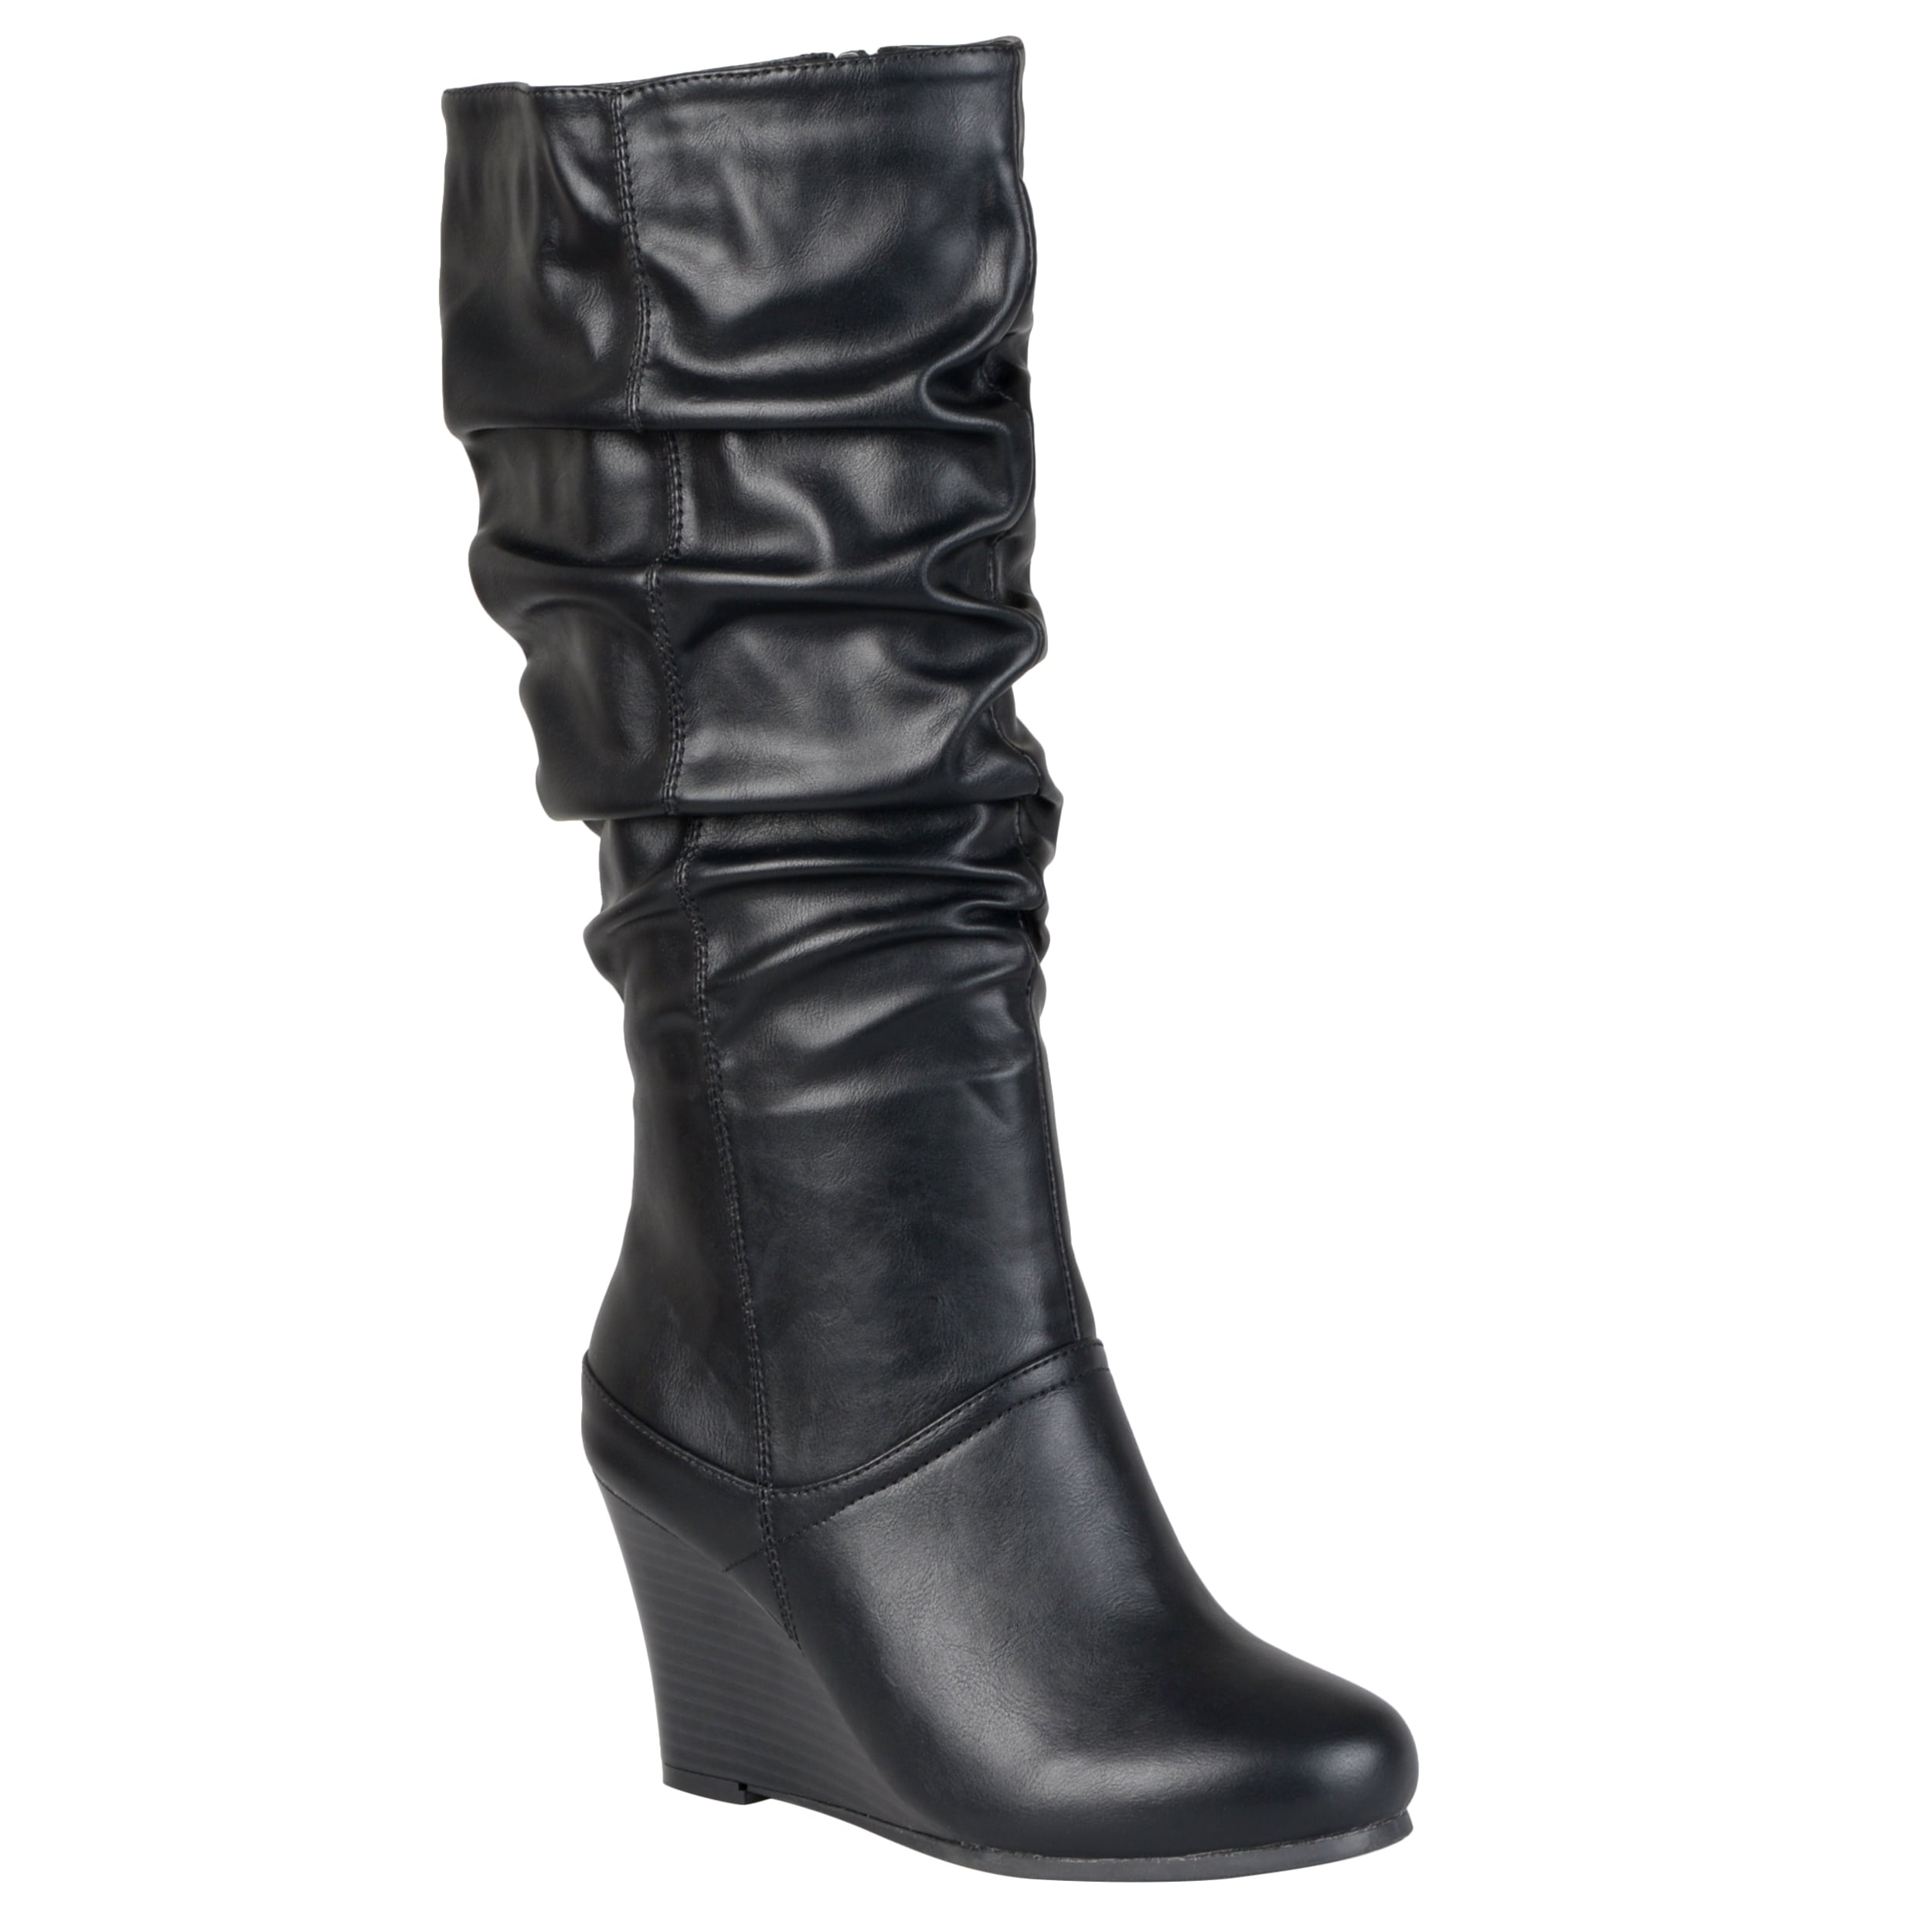 Women's Waterproof Solid Round Toe Slouchy Pull On Mid Calf High Wedge Heel Boots